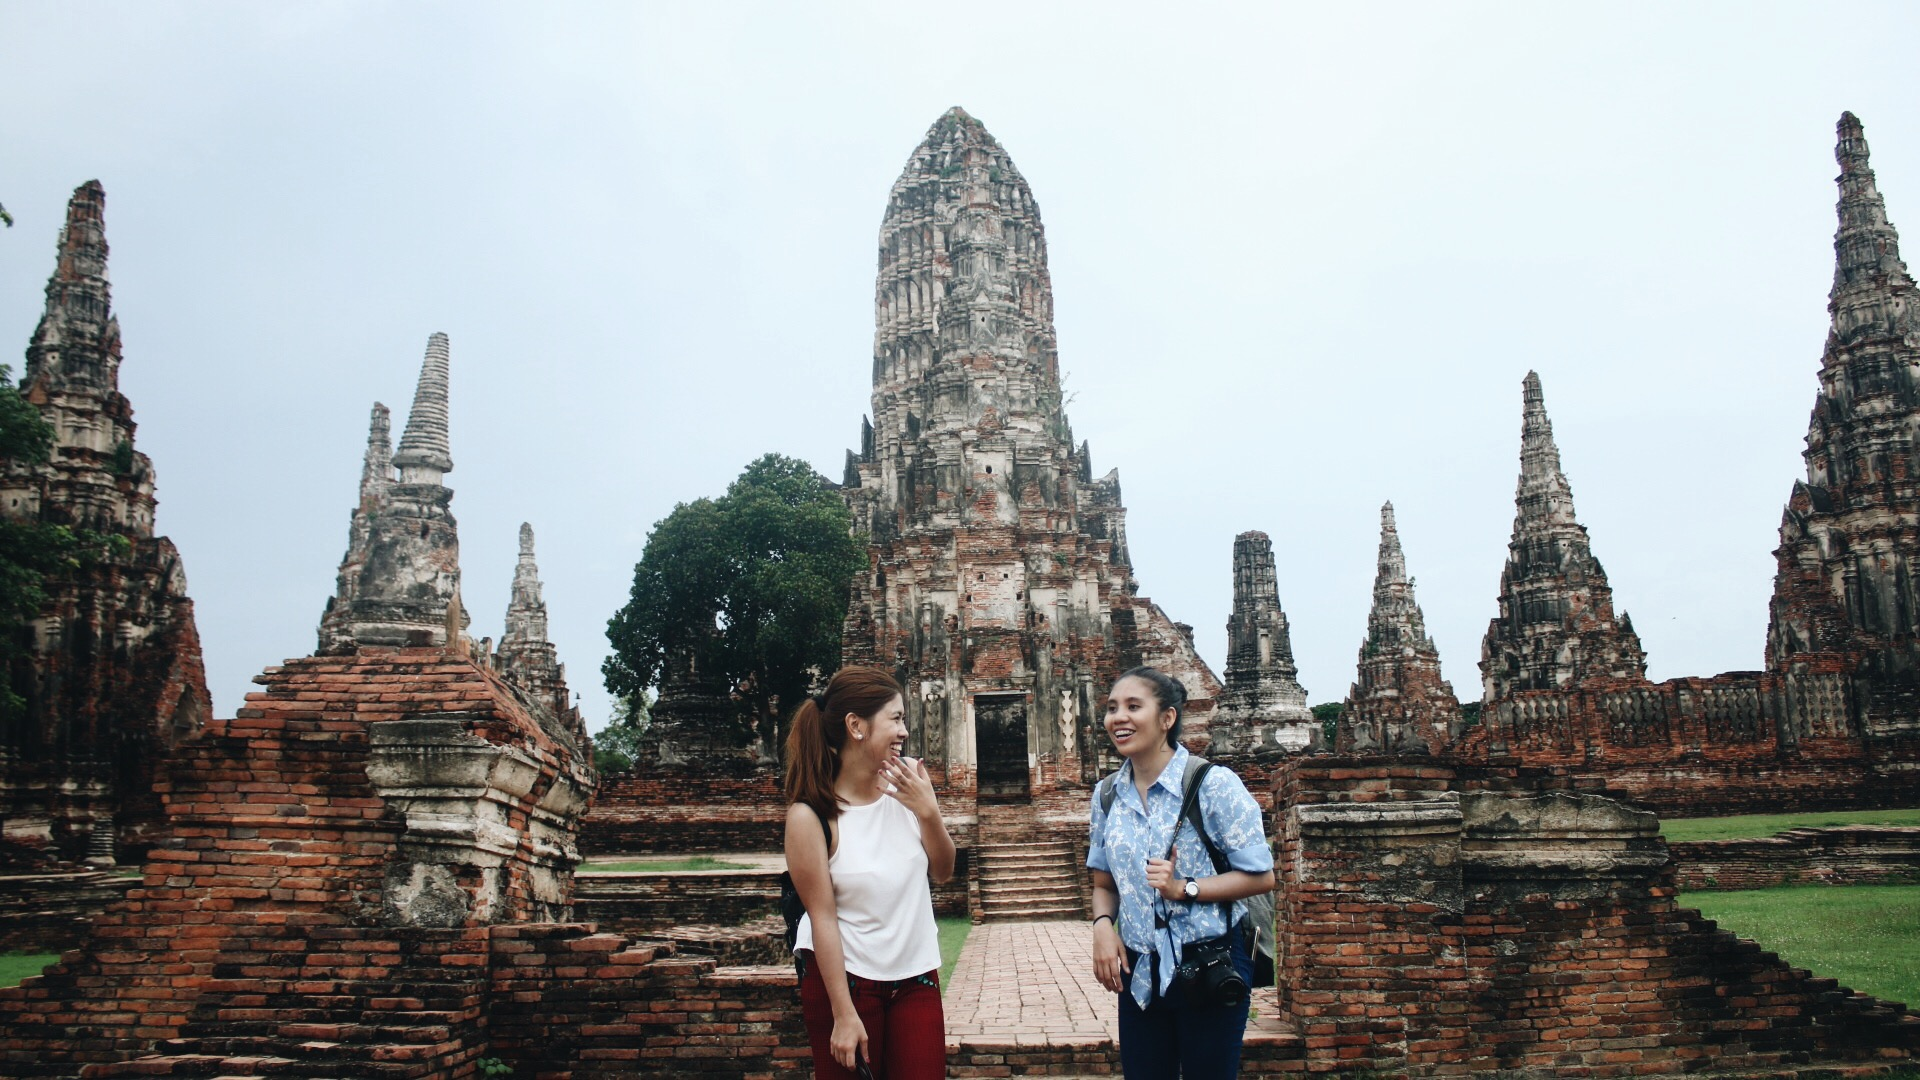 5D4N DIY Thailand itinerary (Bangkok, Ayutthaya and Pattaya) for less than ₱10,000